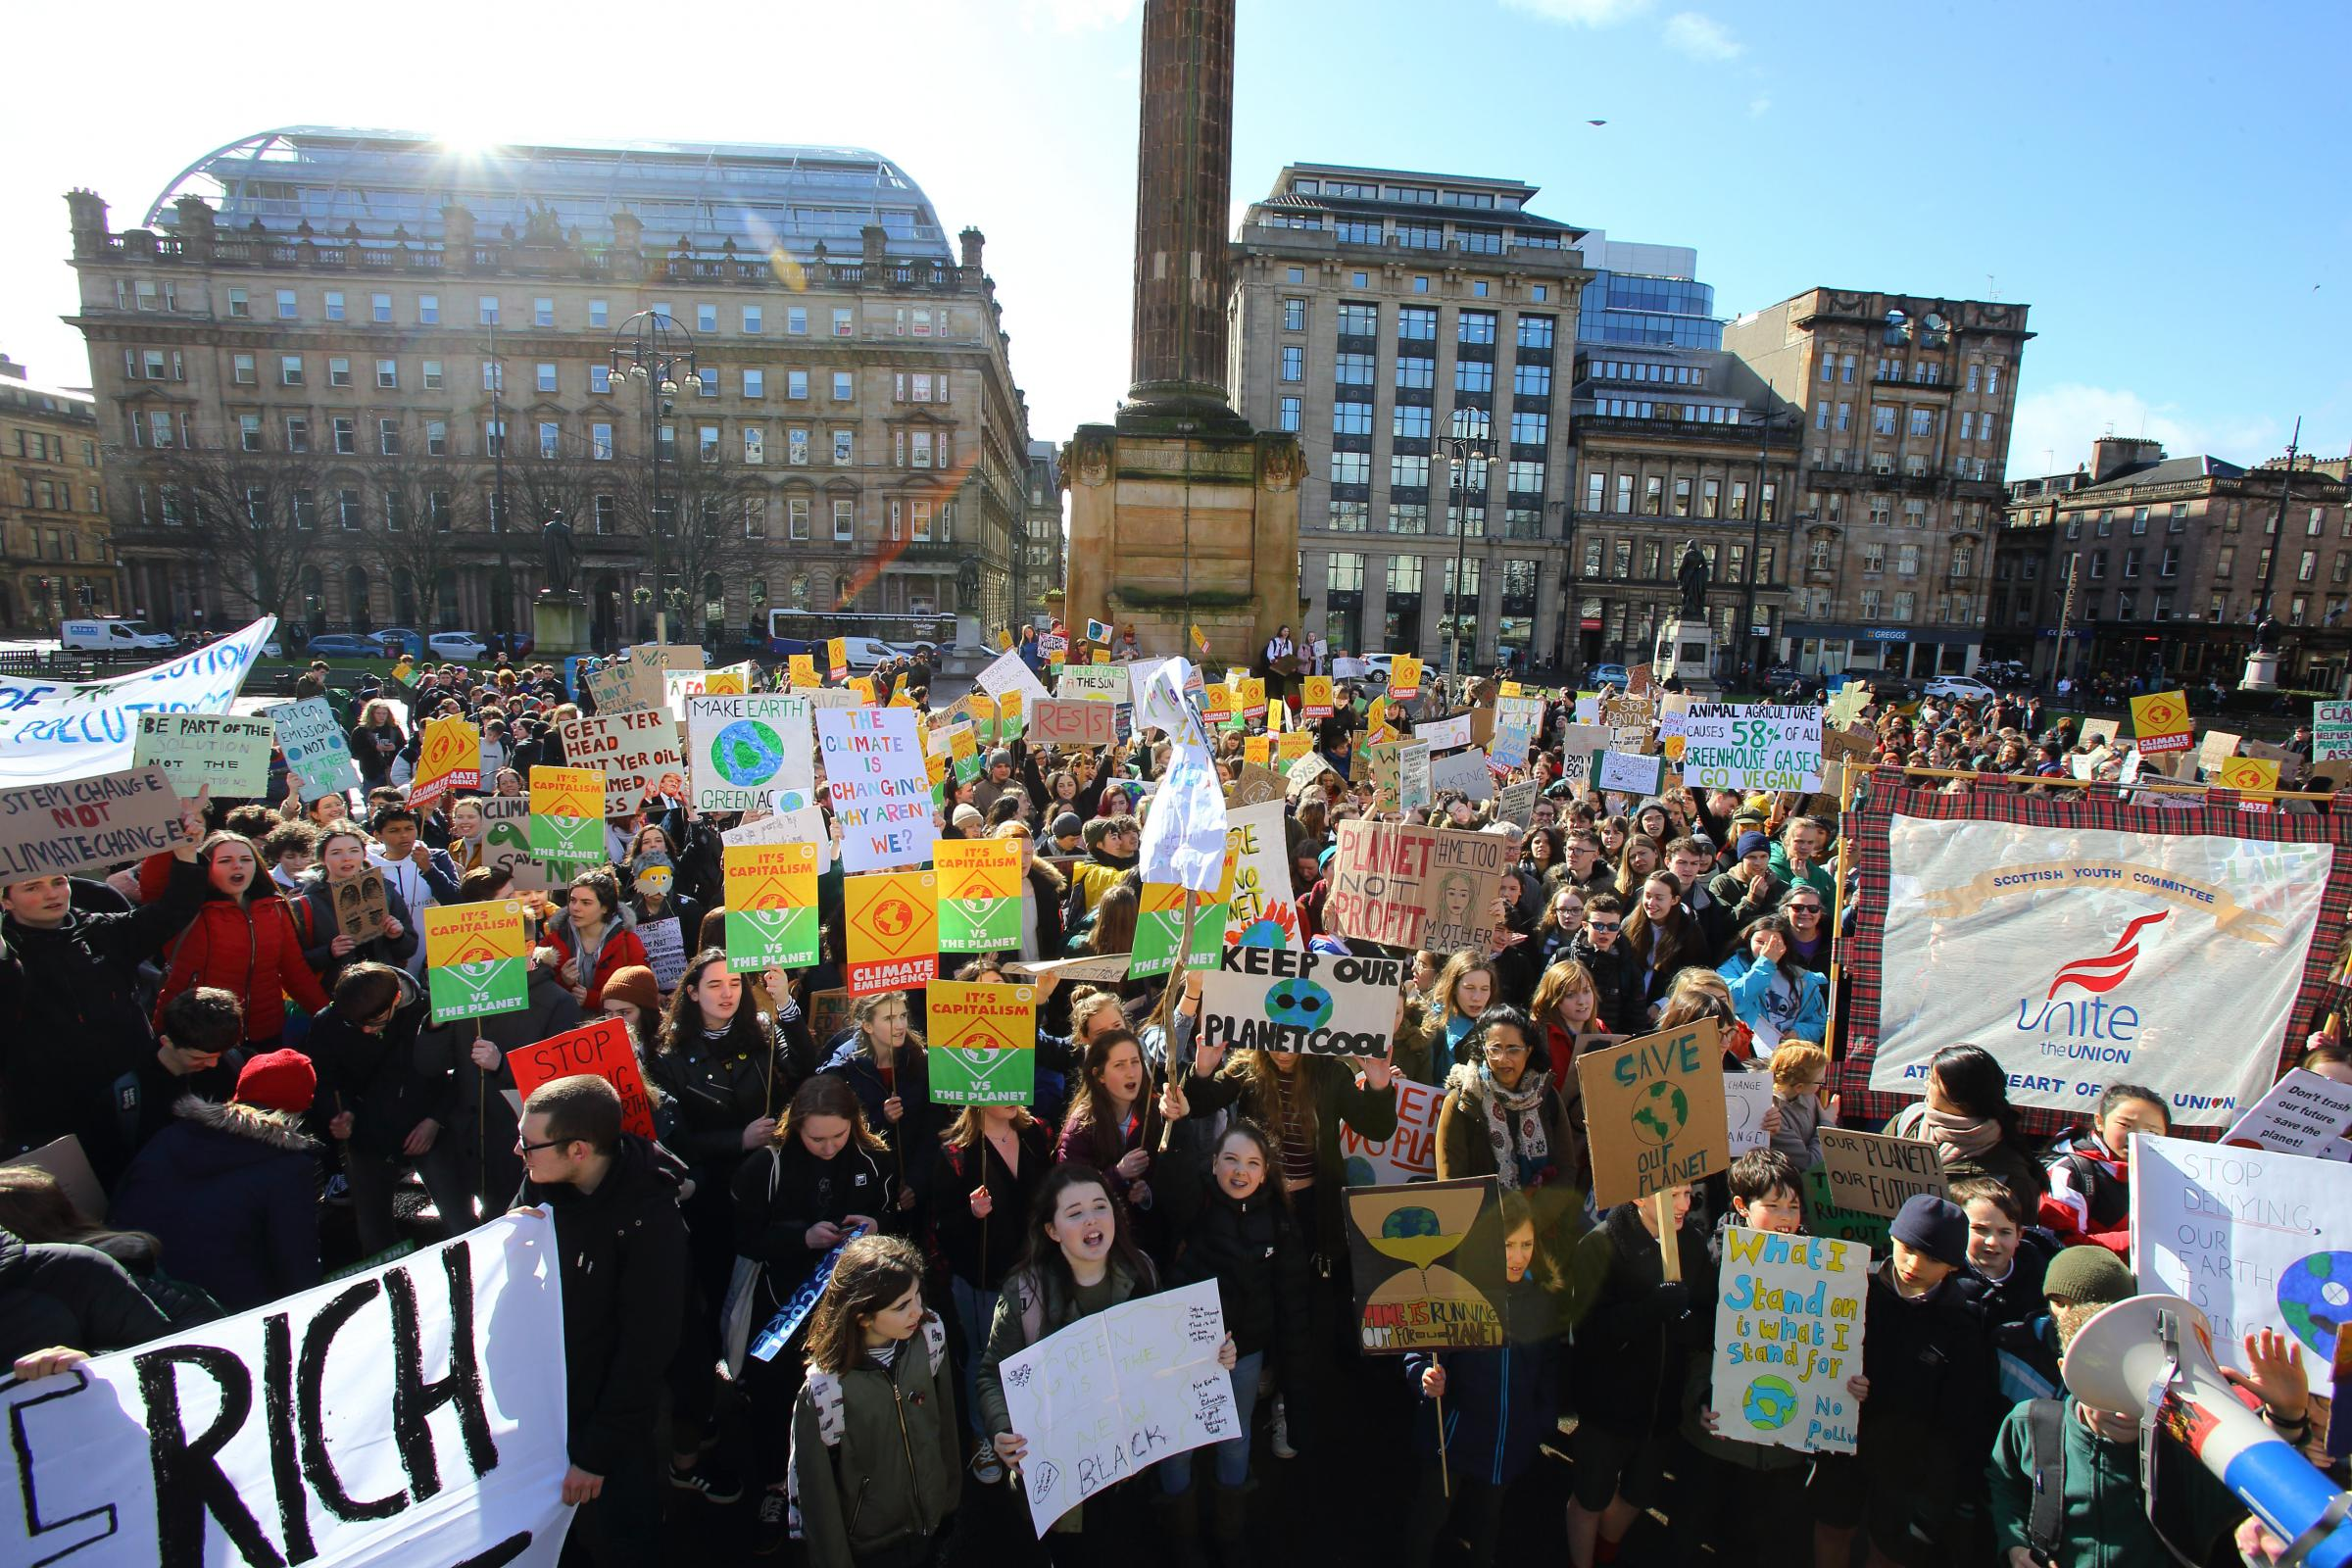 Hundreds of youngsters gather in Glasgow's George Square to protest over 'Government inaction'